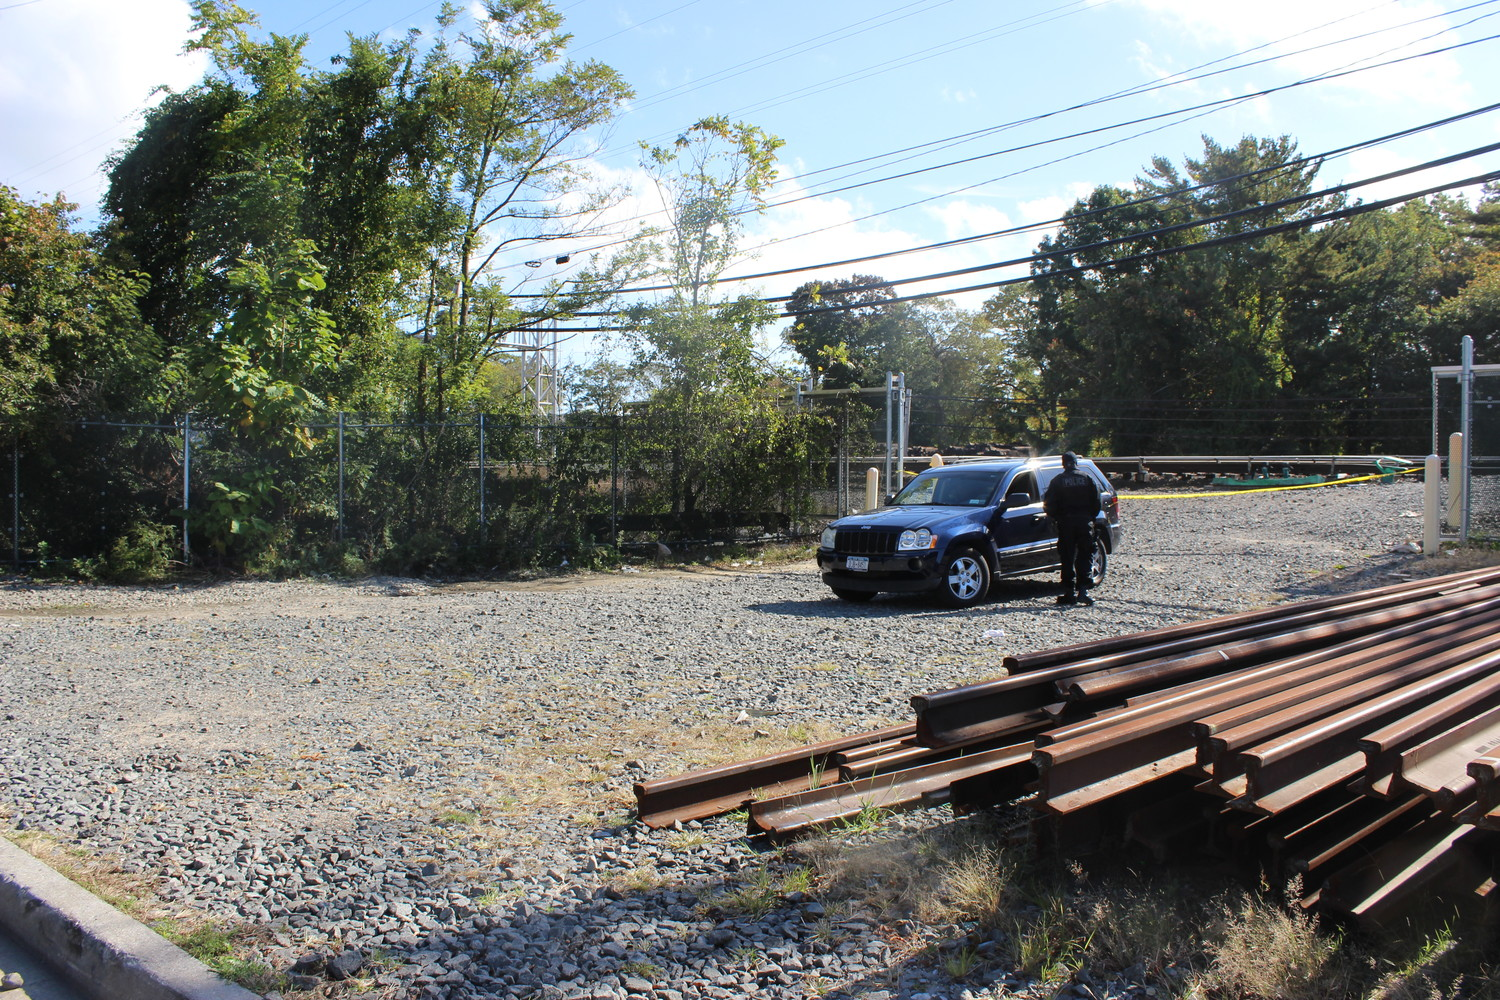 Human remains found in Freeport-Merrick woods, police say